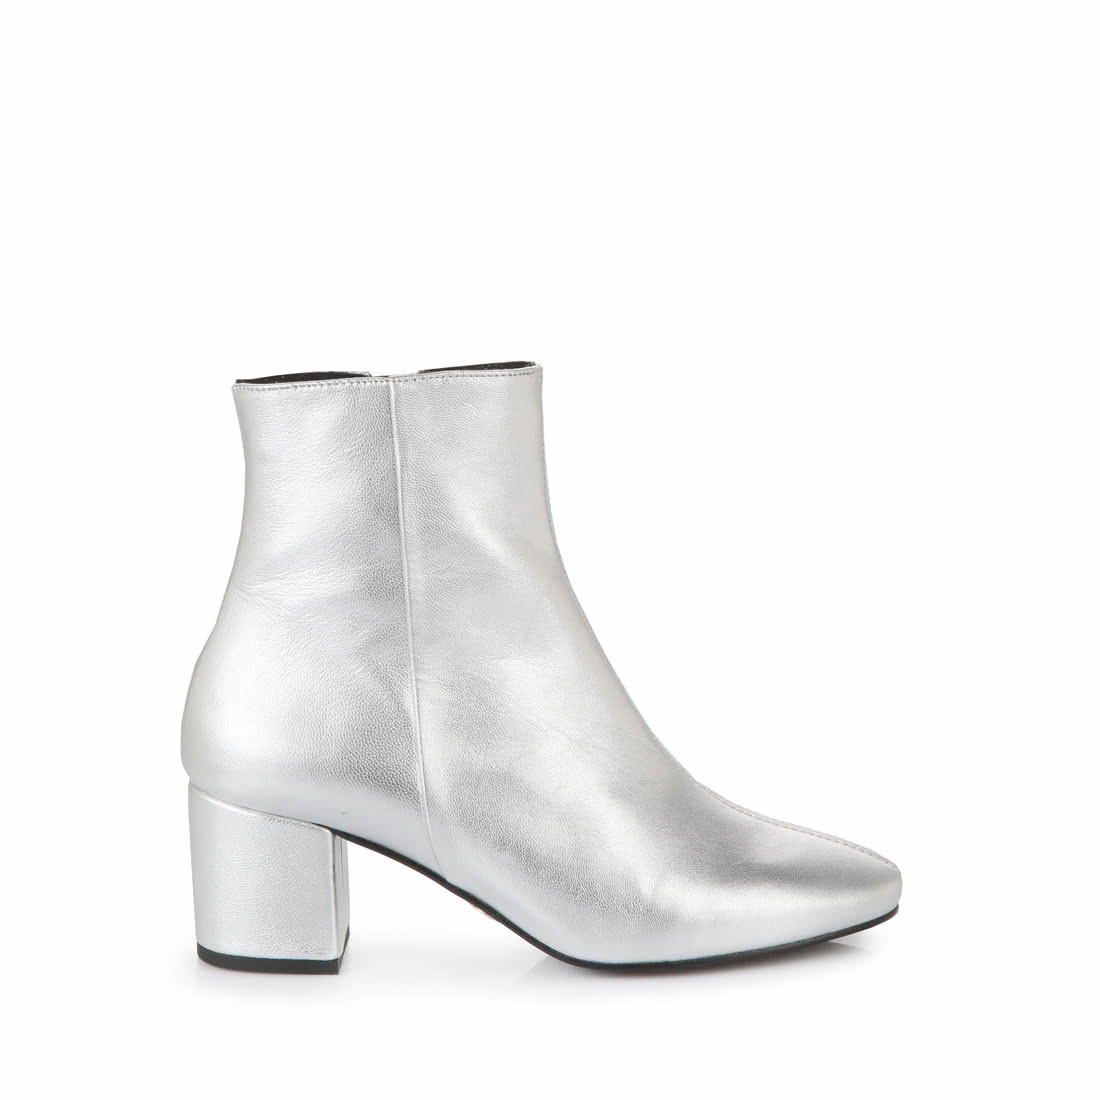 reputable site a48a0 ada07 Buffalo ankle boots in metallic silver buy online in BUFFALO ...